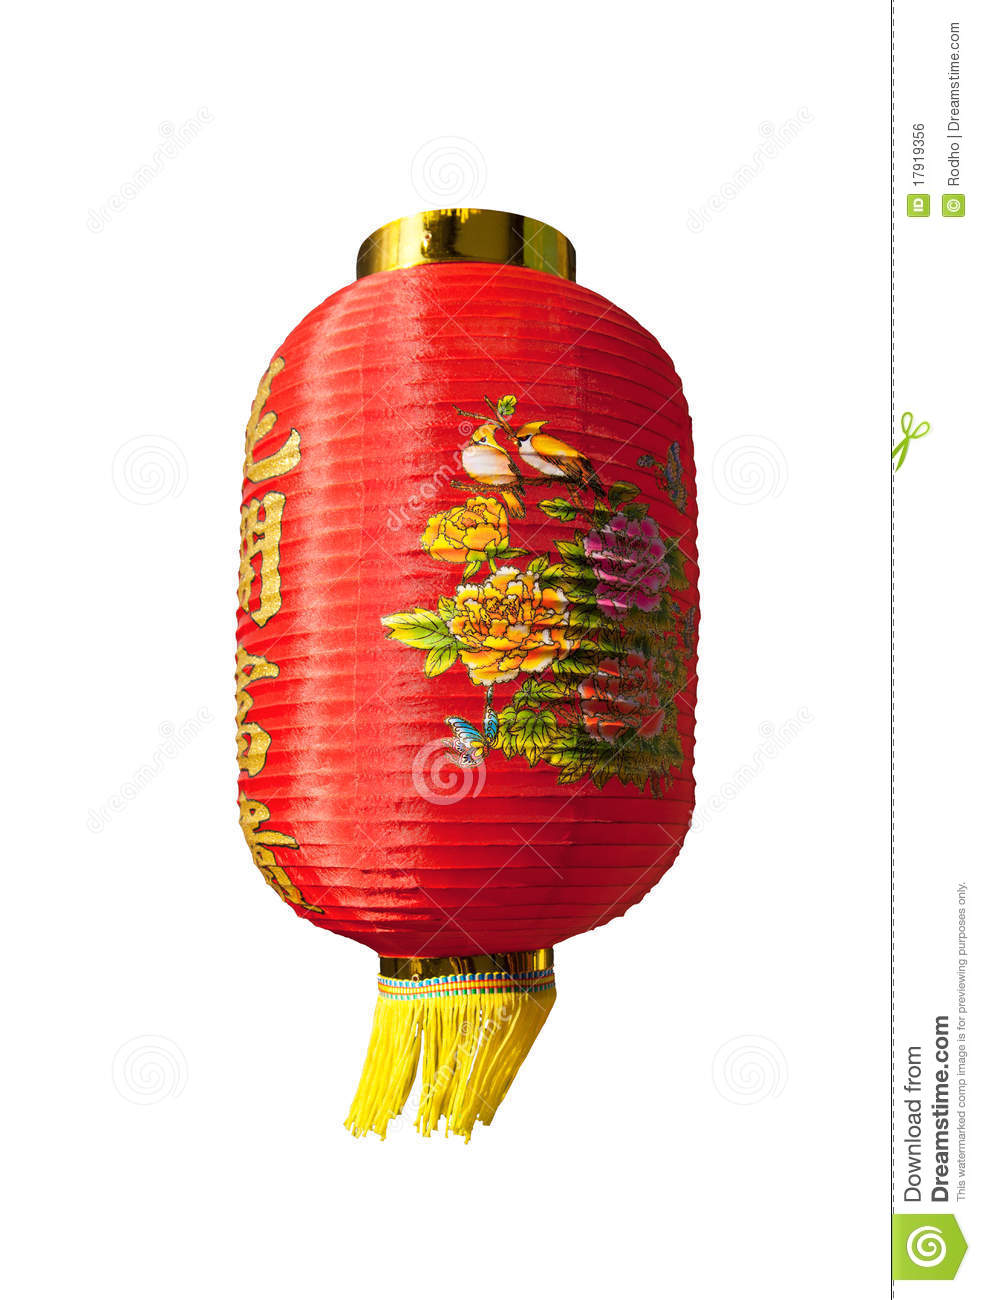 Traditional And Decorative Chinese Lantern Royalty Free Stock Image ...